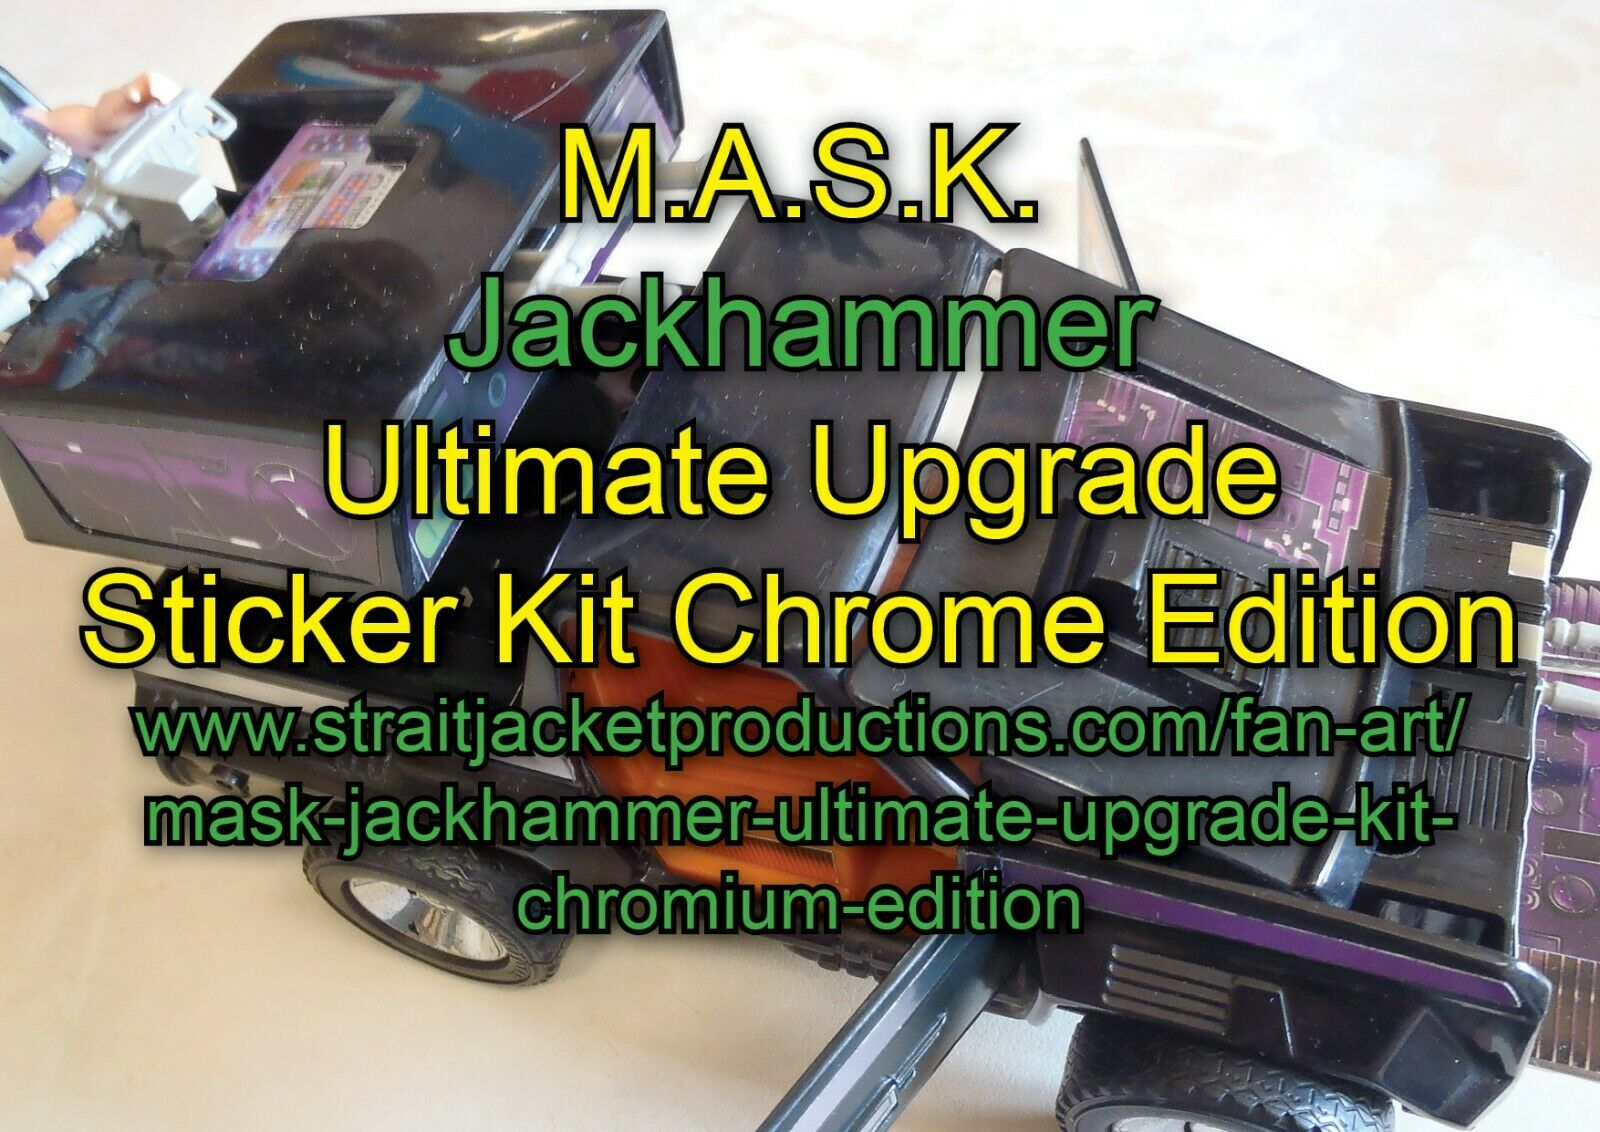 Mask M.A.S.K Martello Pneumatico Ultimate UPGRADE KIT-Cromo Edizione